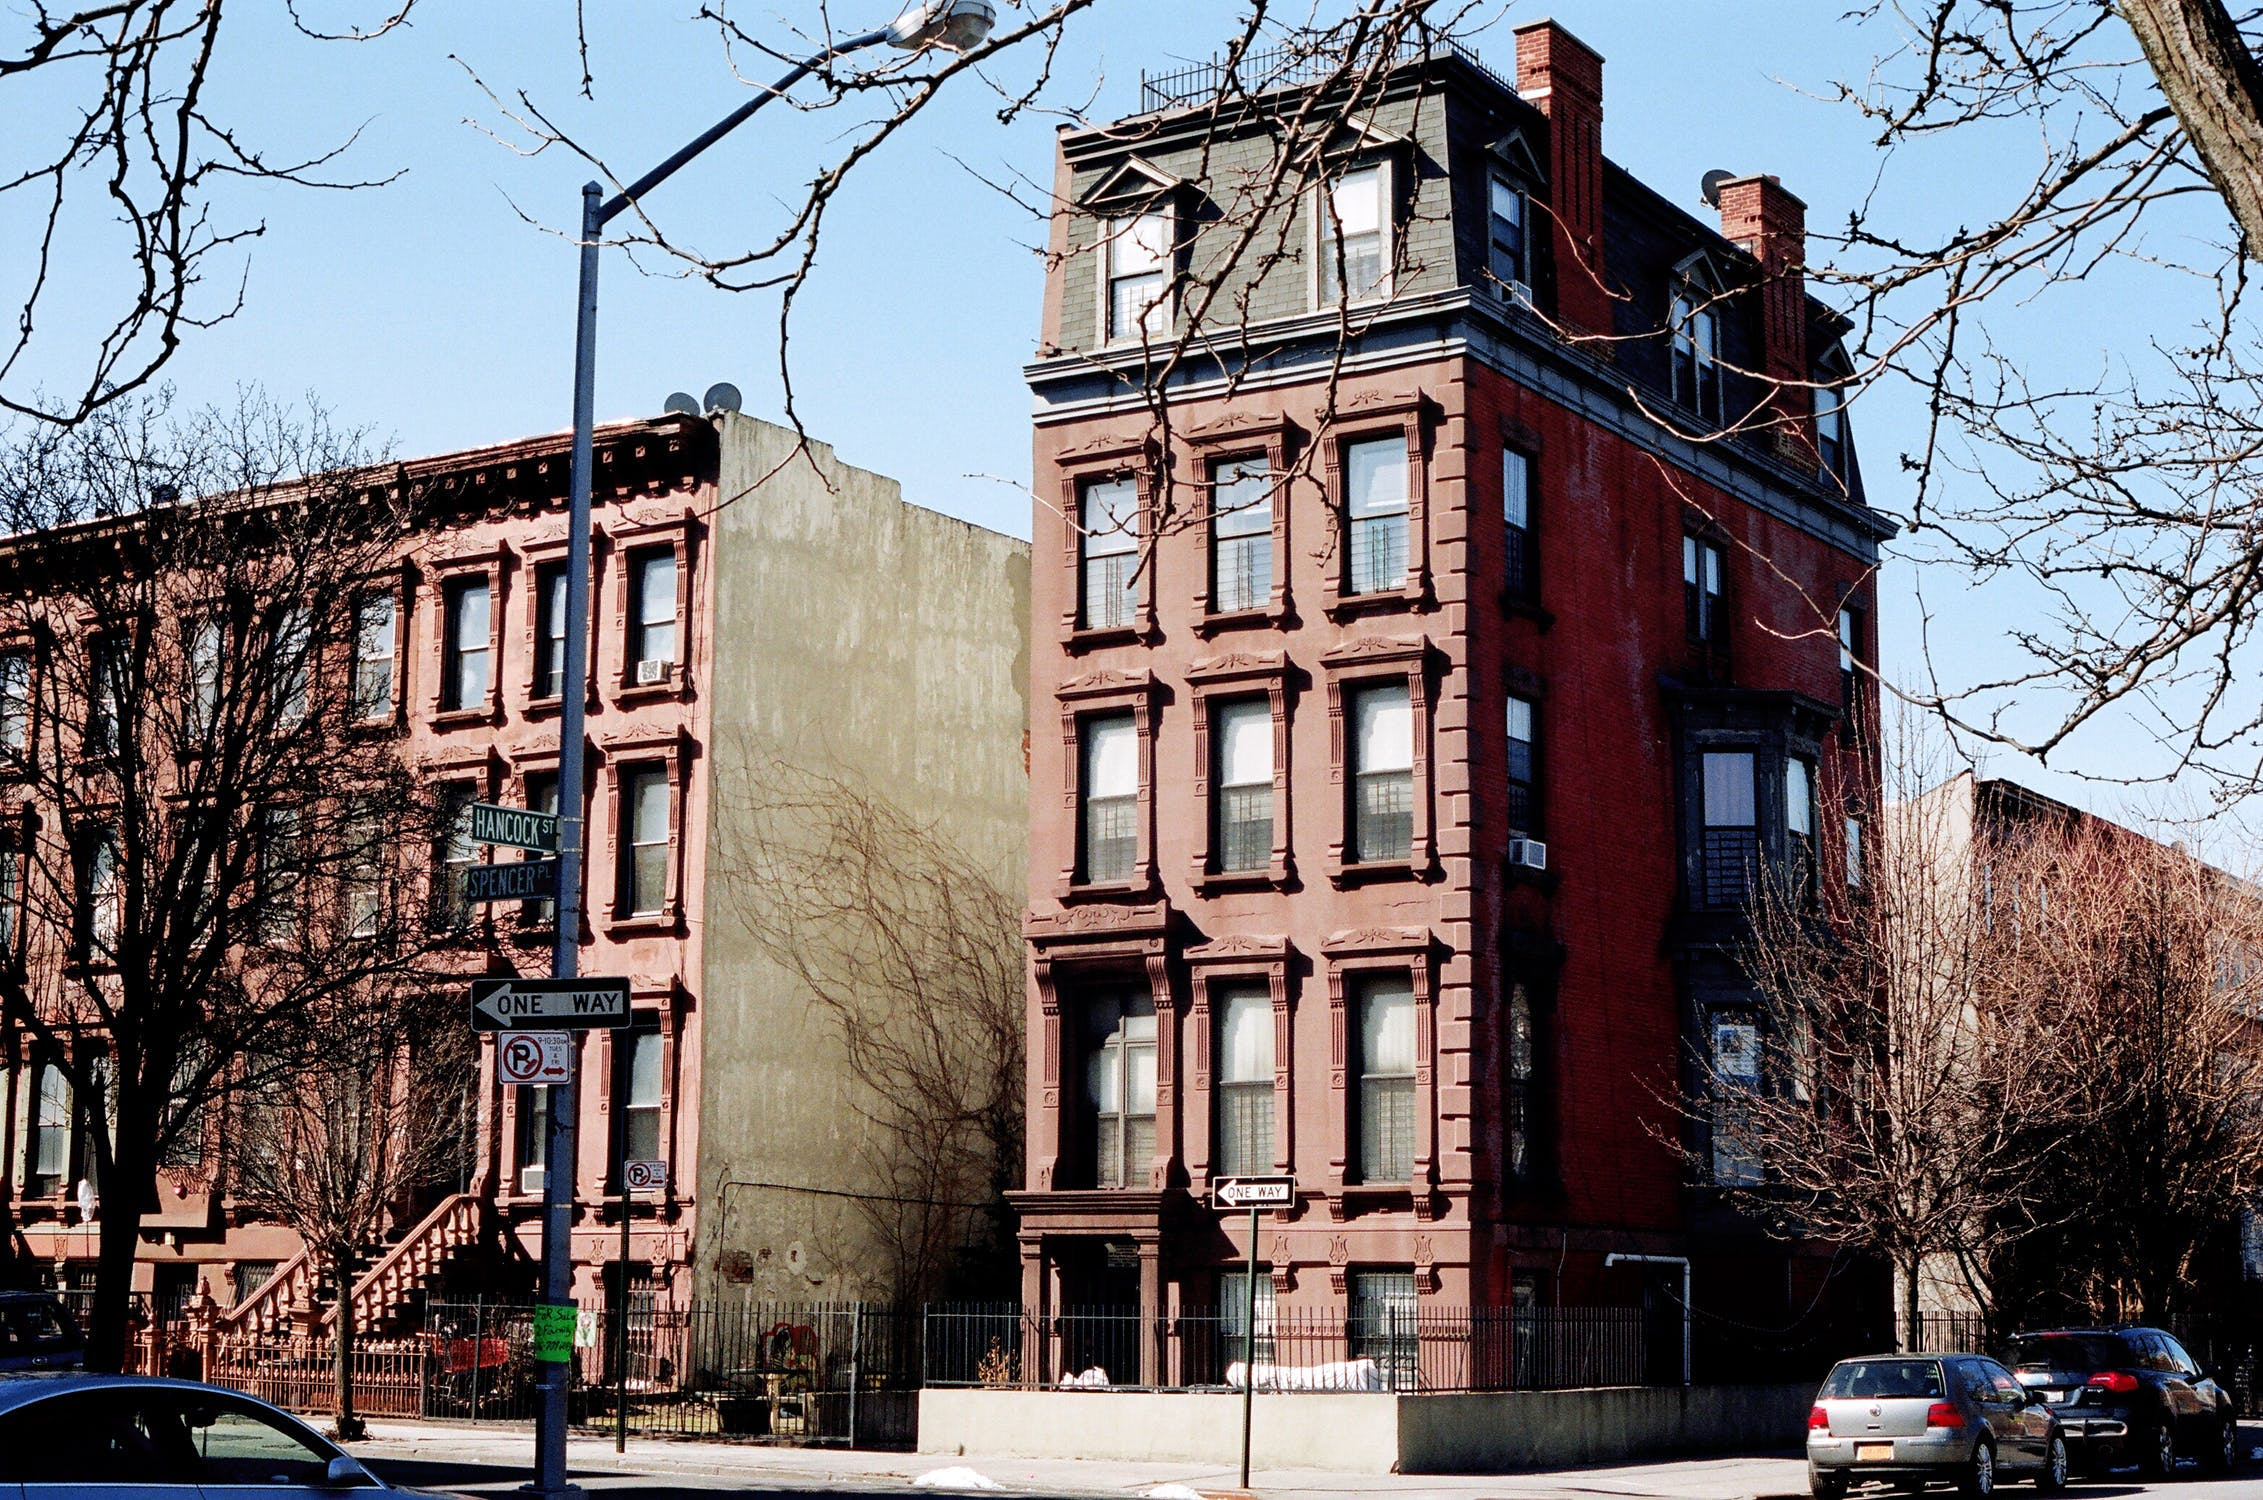 brownstone style building